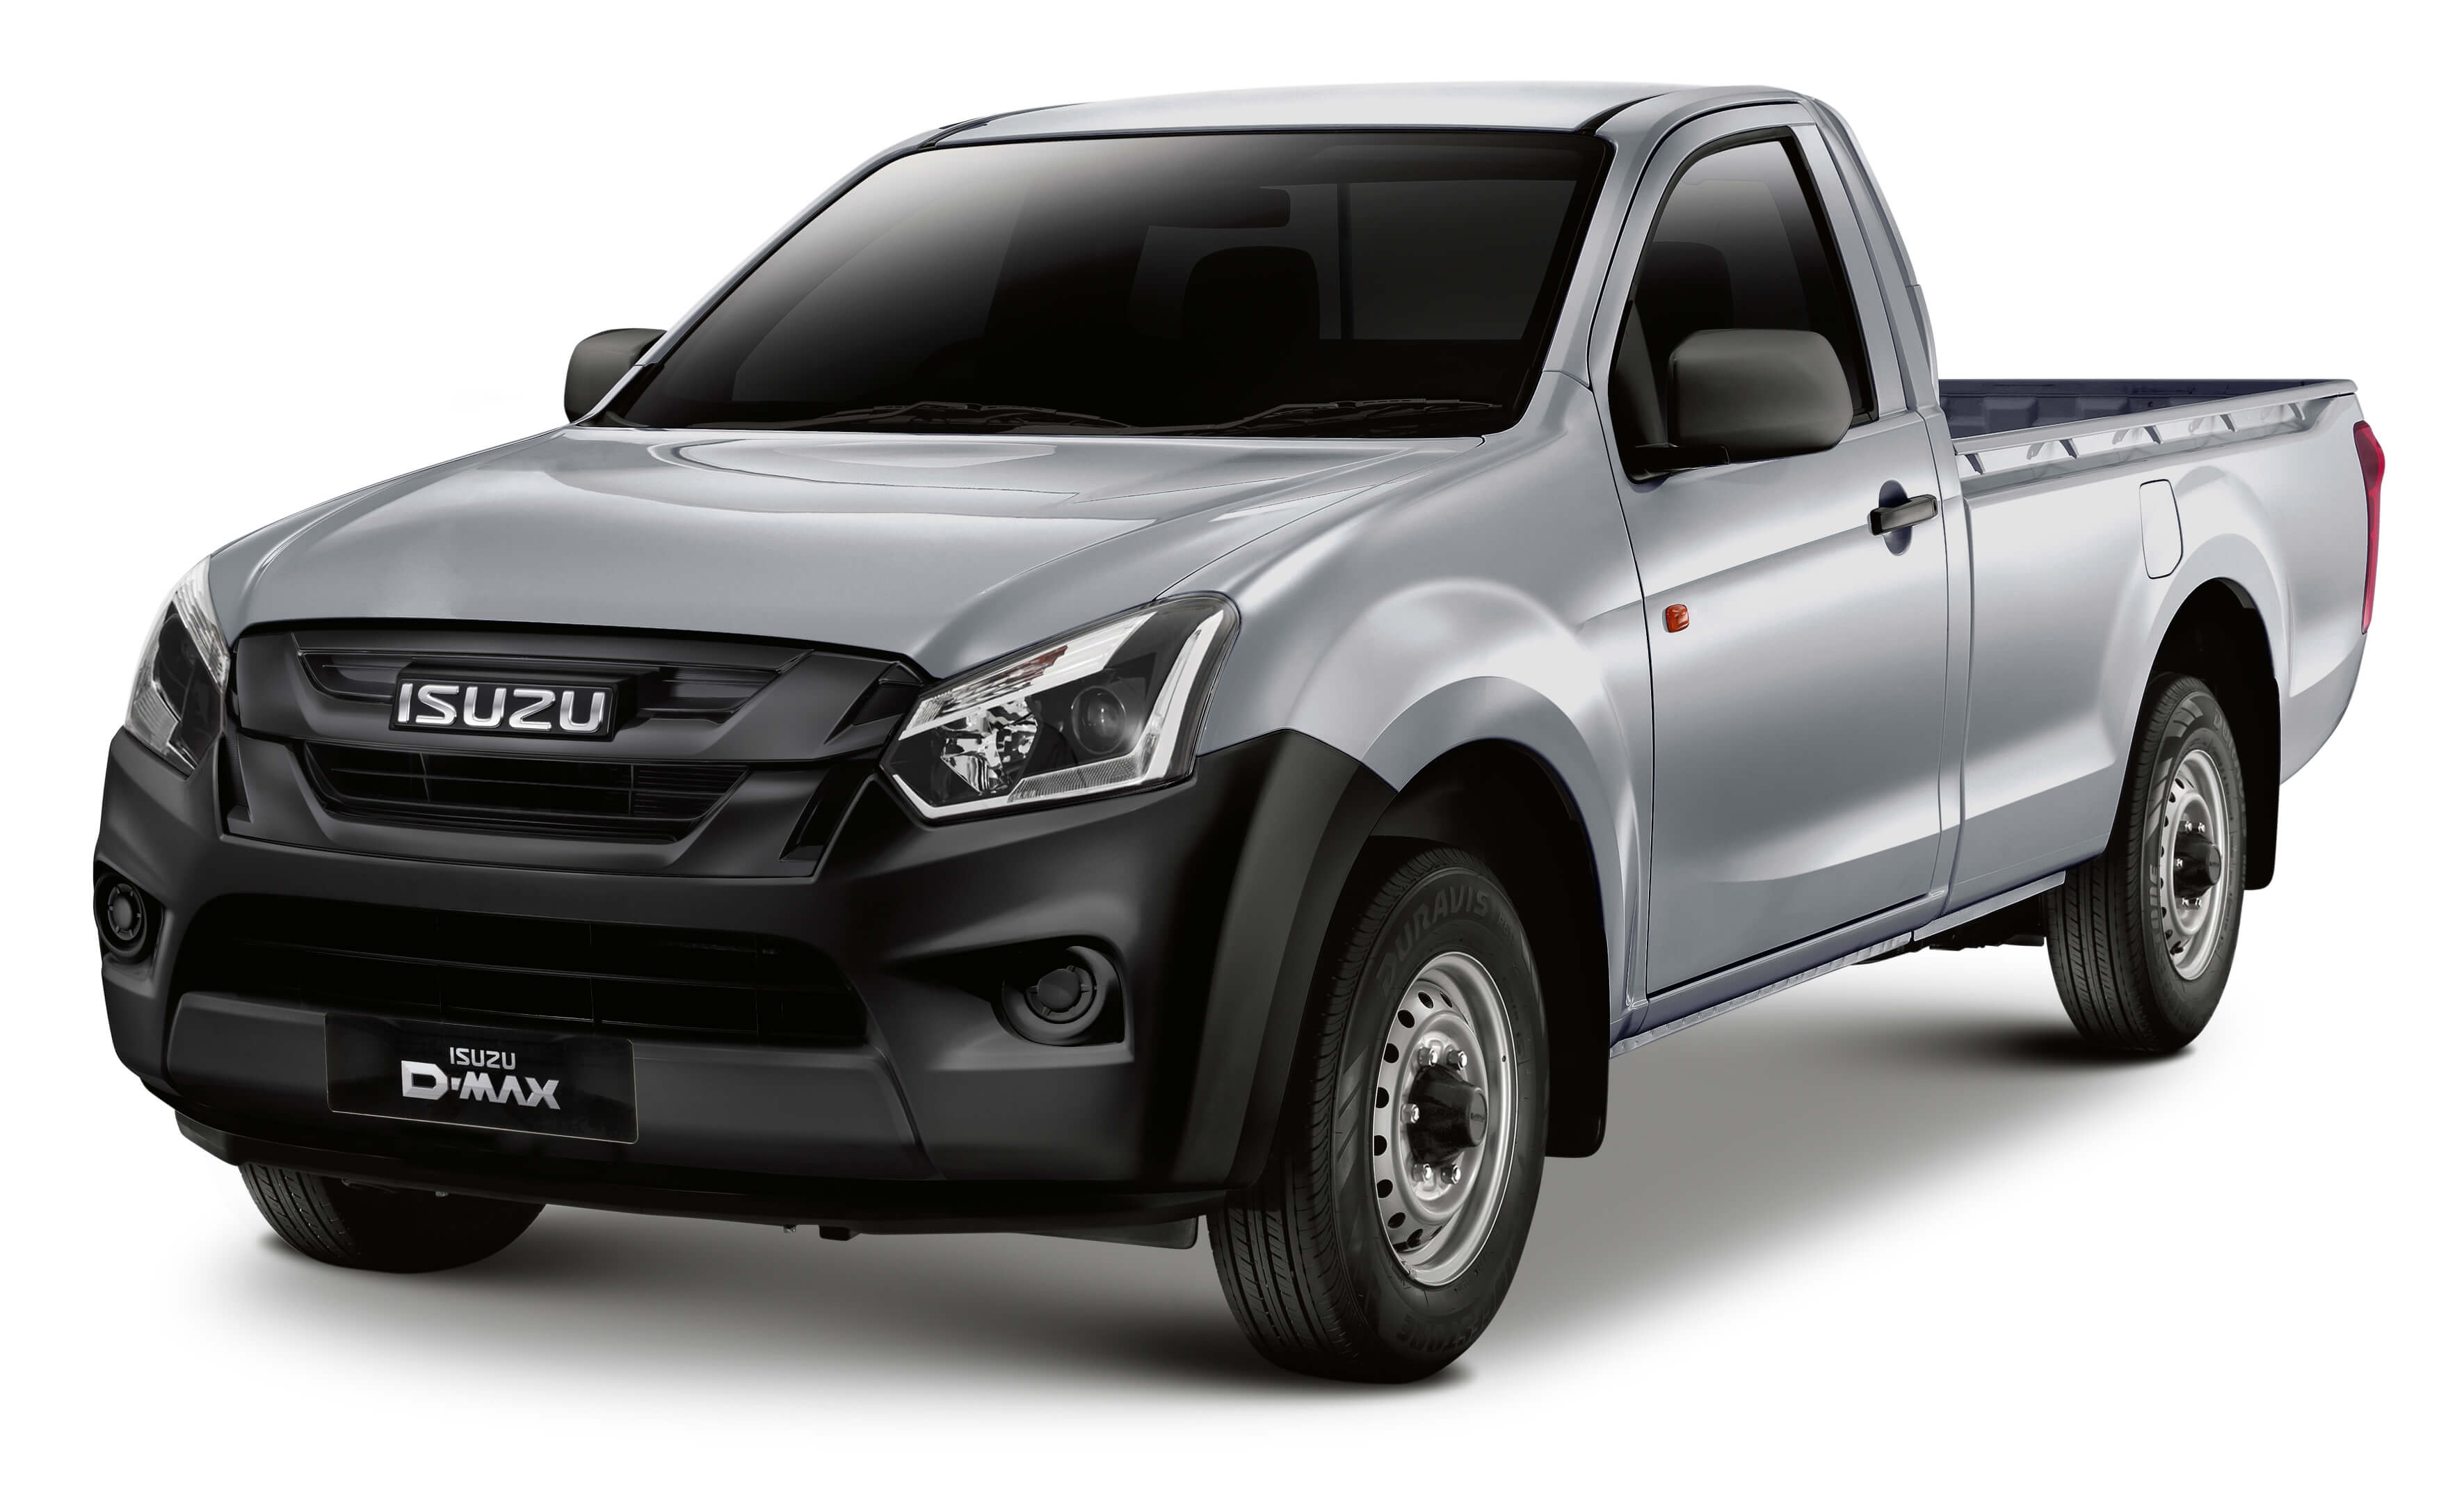 Isuzu D-Max Utility front view in silver